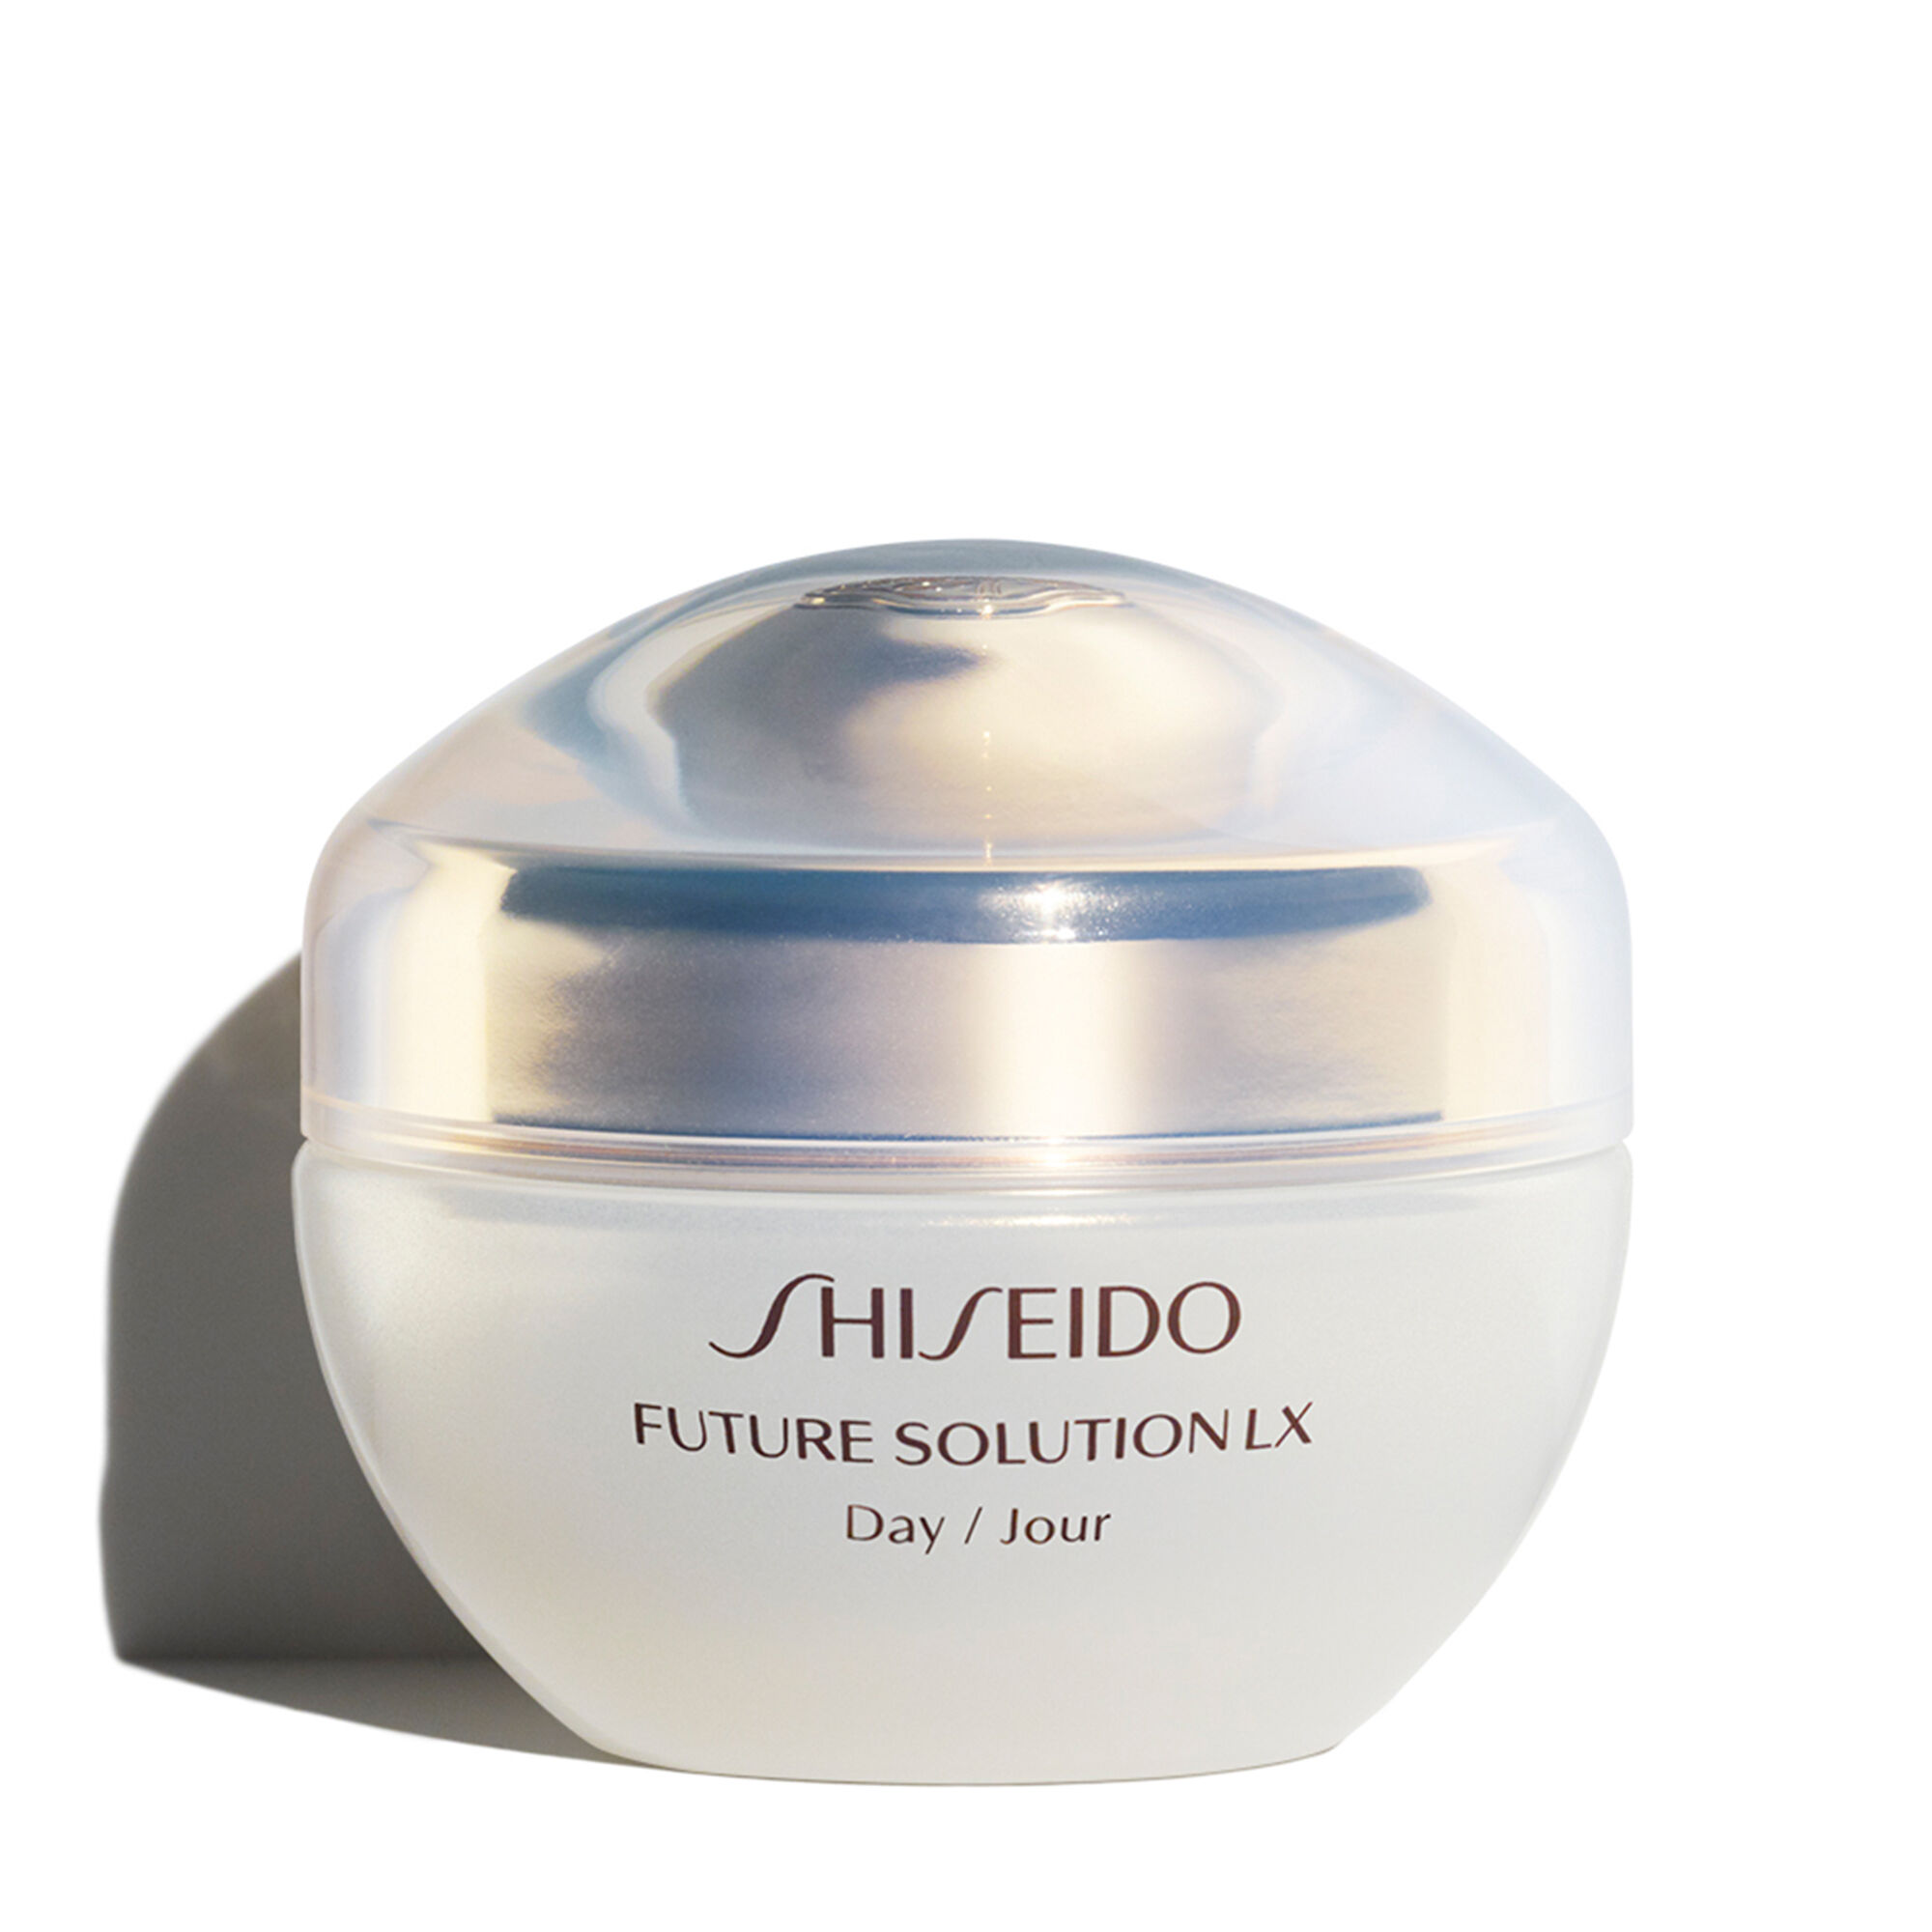 where can i buy shiseido products